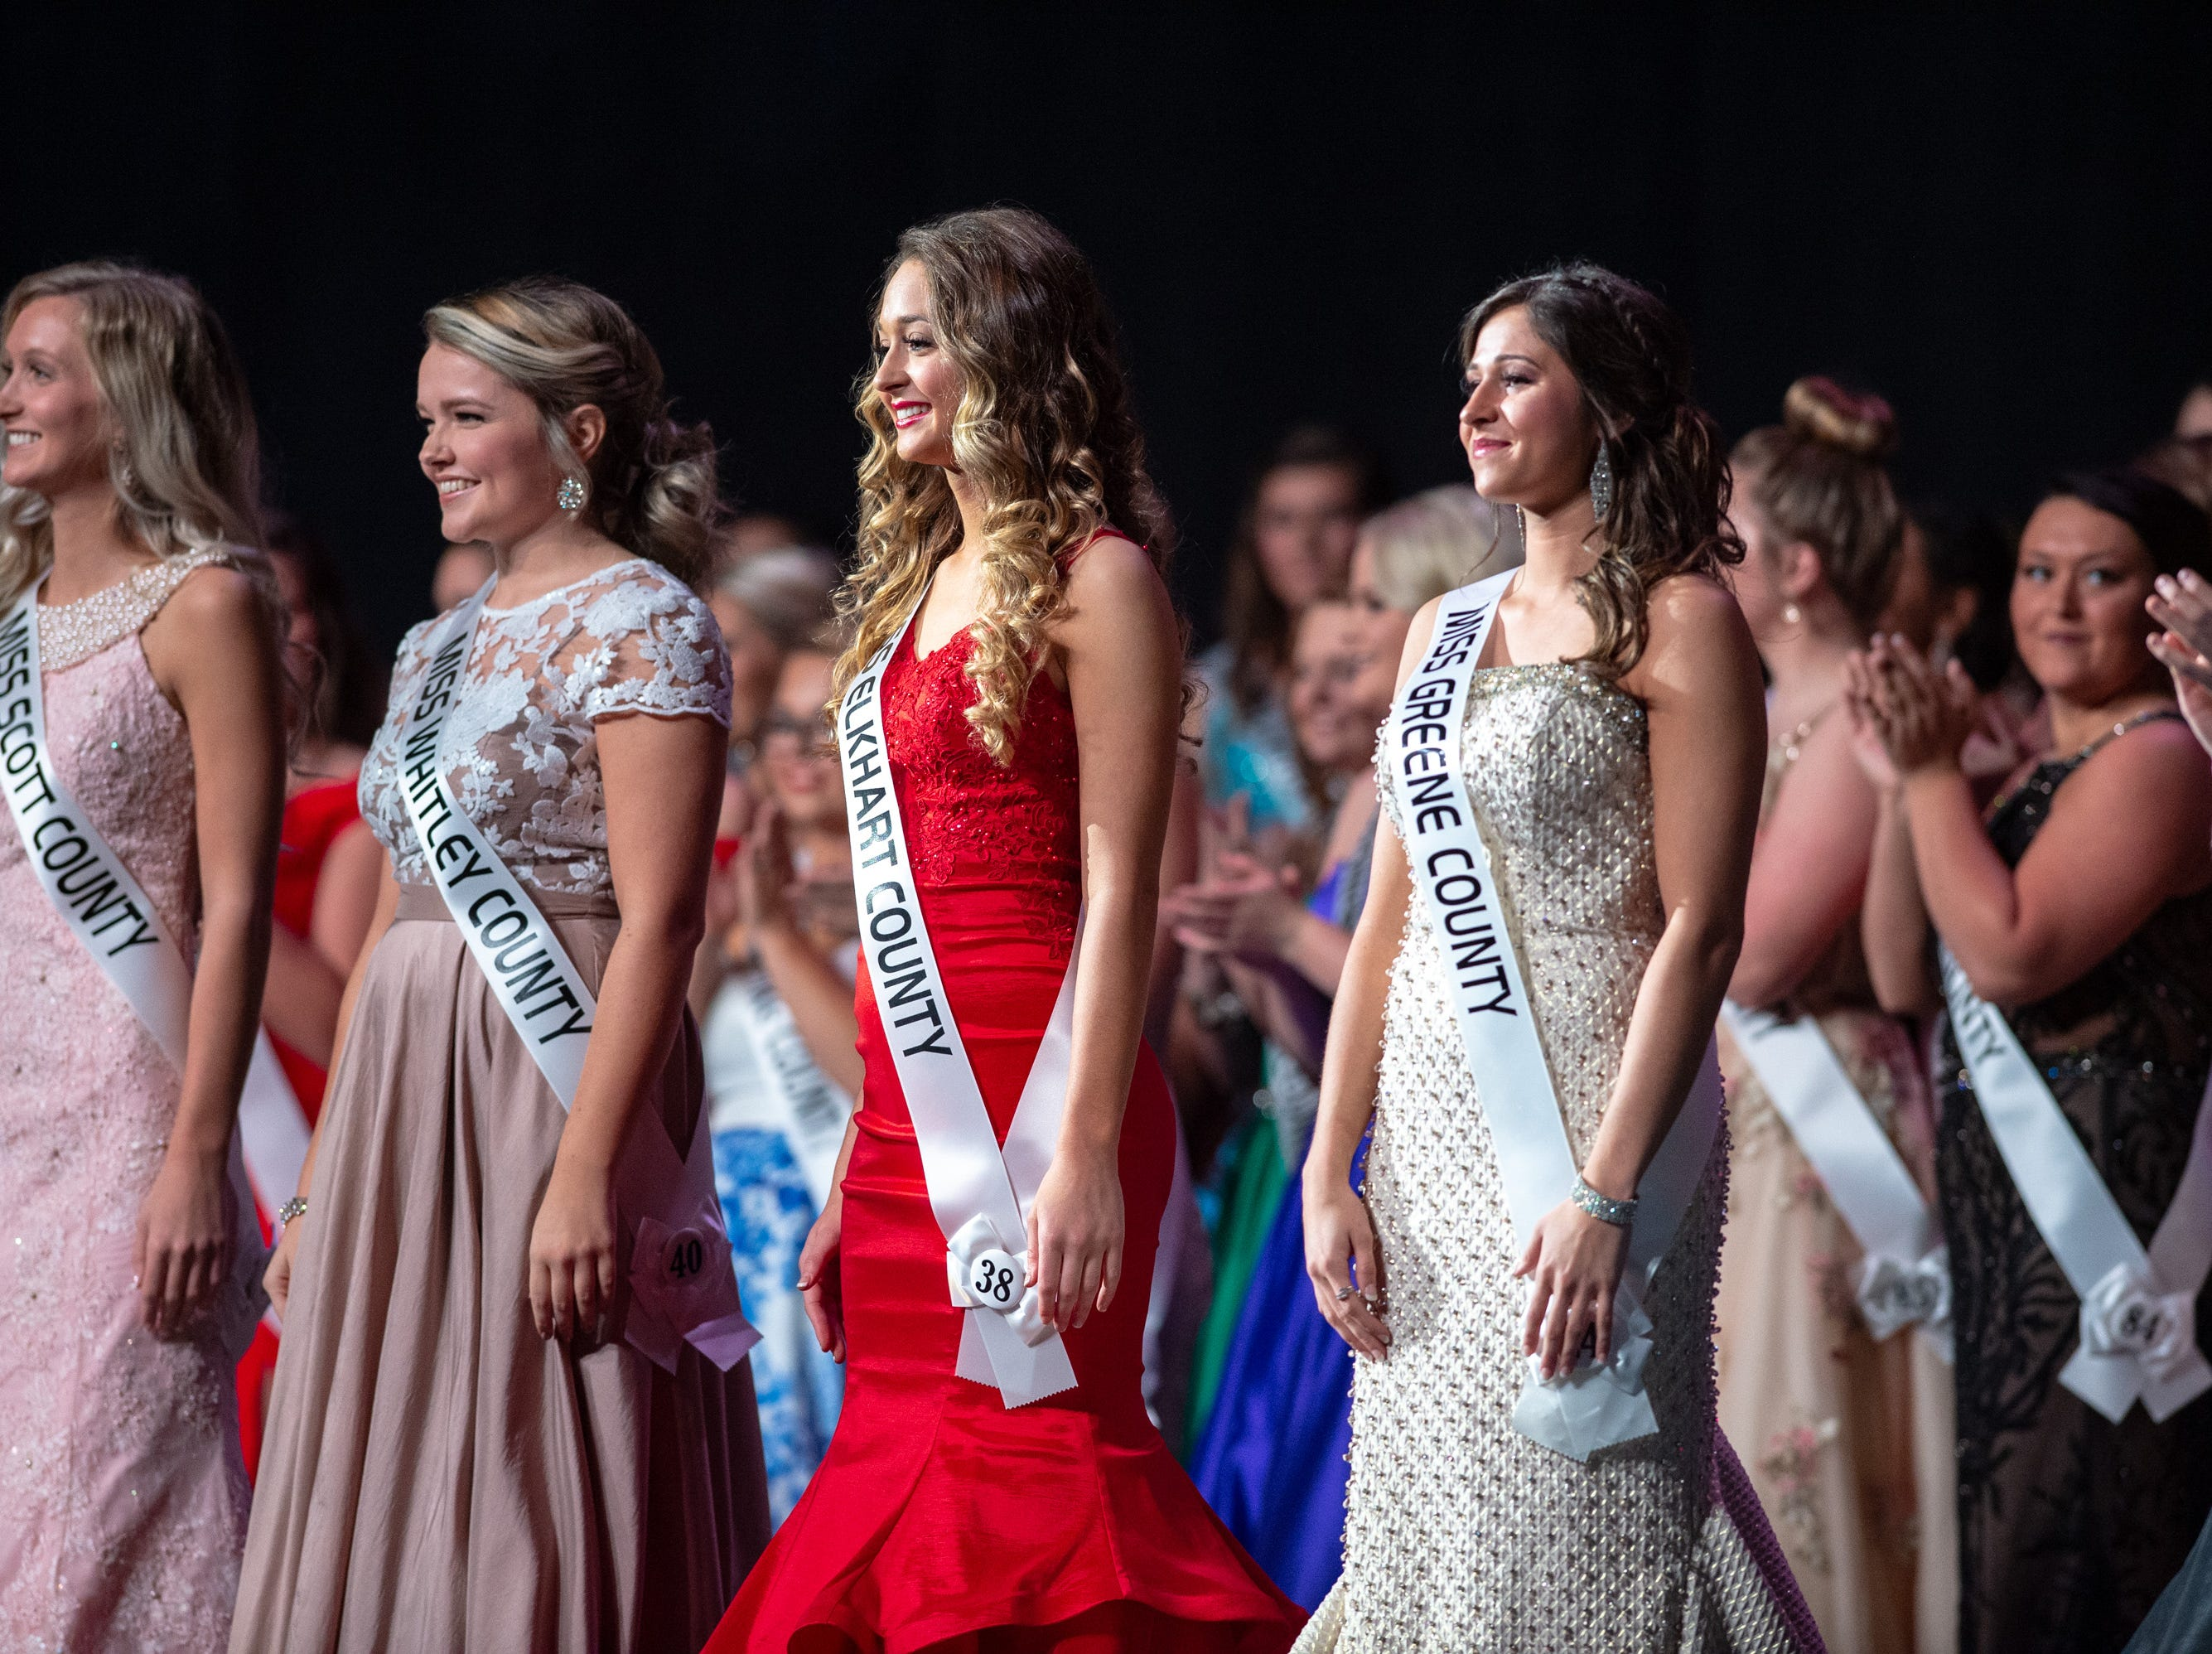 Semifinal contestants on stage during the 61st Indiana State Fair Queen Pageant at the Indiana State Fairgrounds in Indianapolis on Sunday, Jan. 6, 2019.